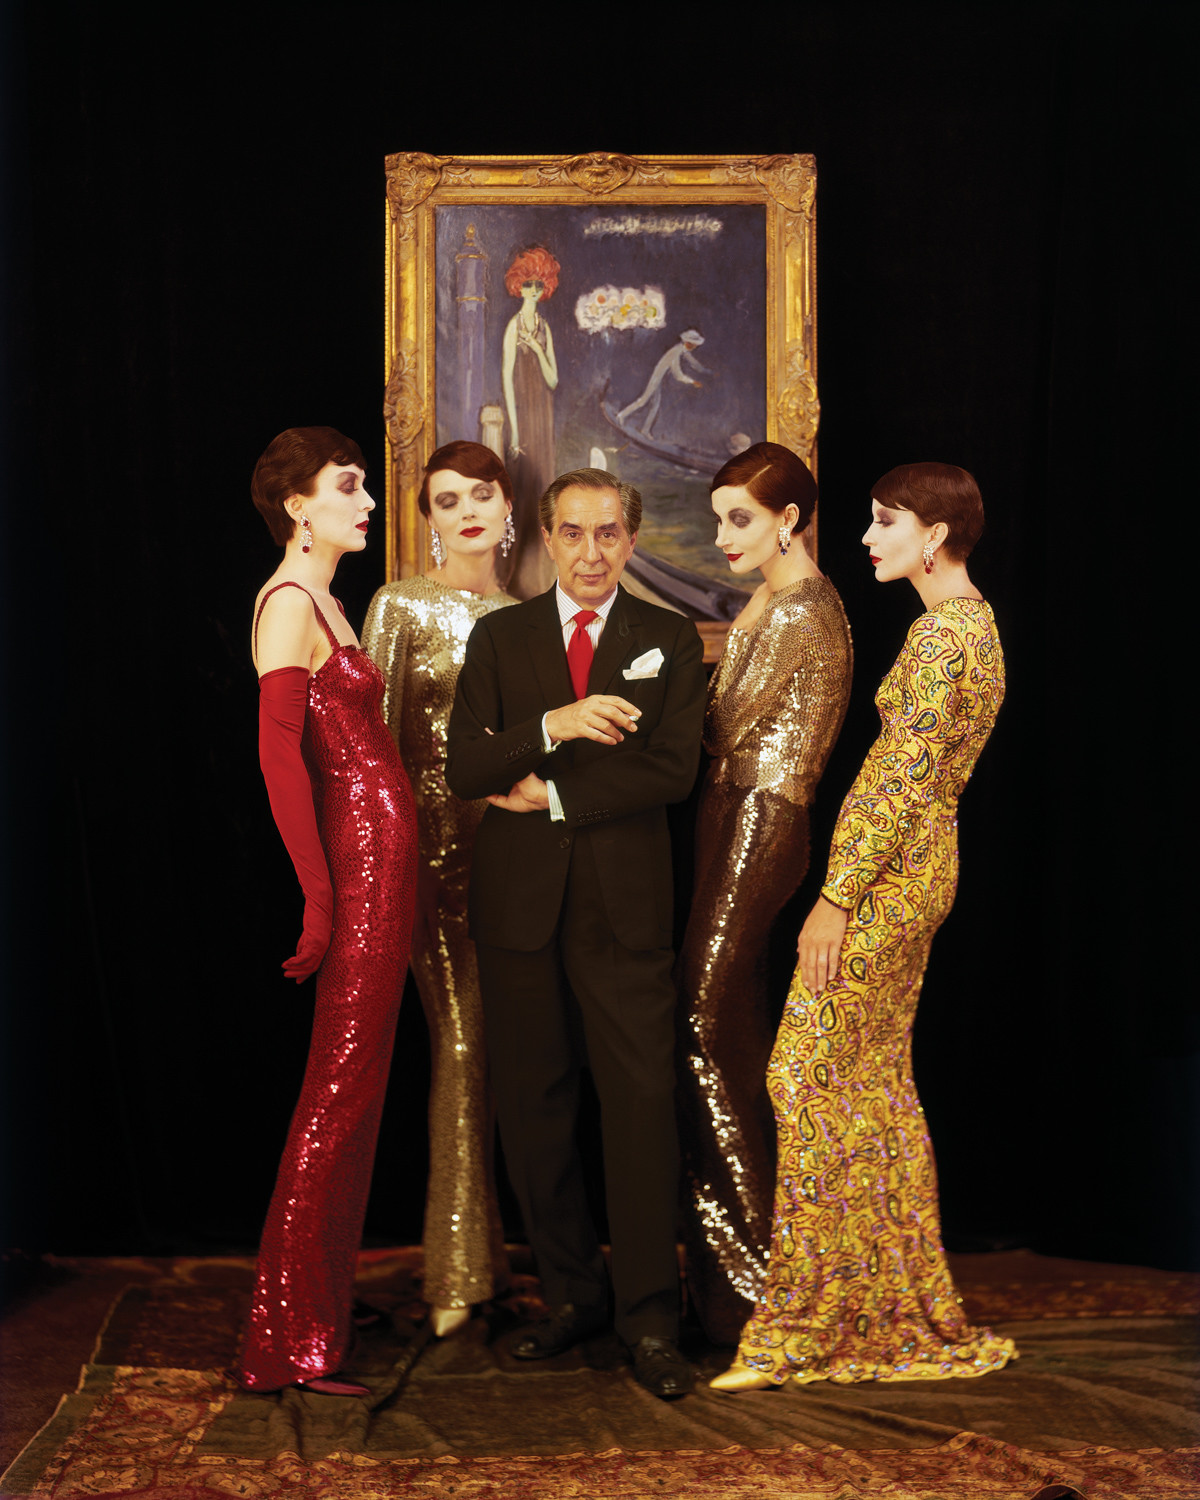 The exhibition 'Norman Norell: Dean of American Fashion' will show roughly 100 outfits and accessories by the designer at The Museum at Fashion Institute of Technology.